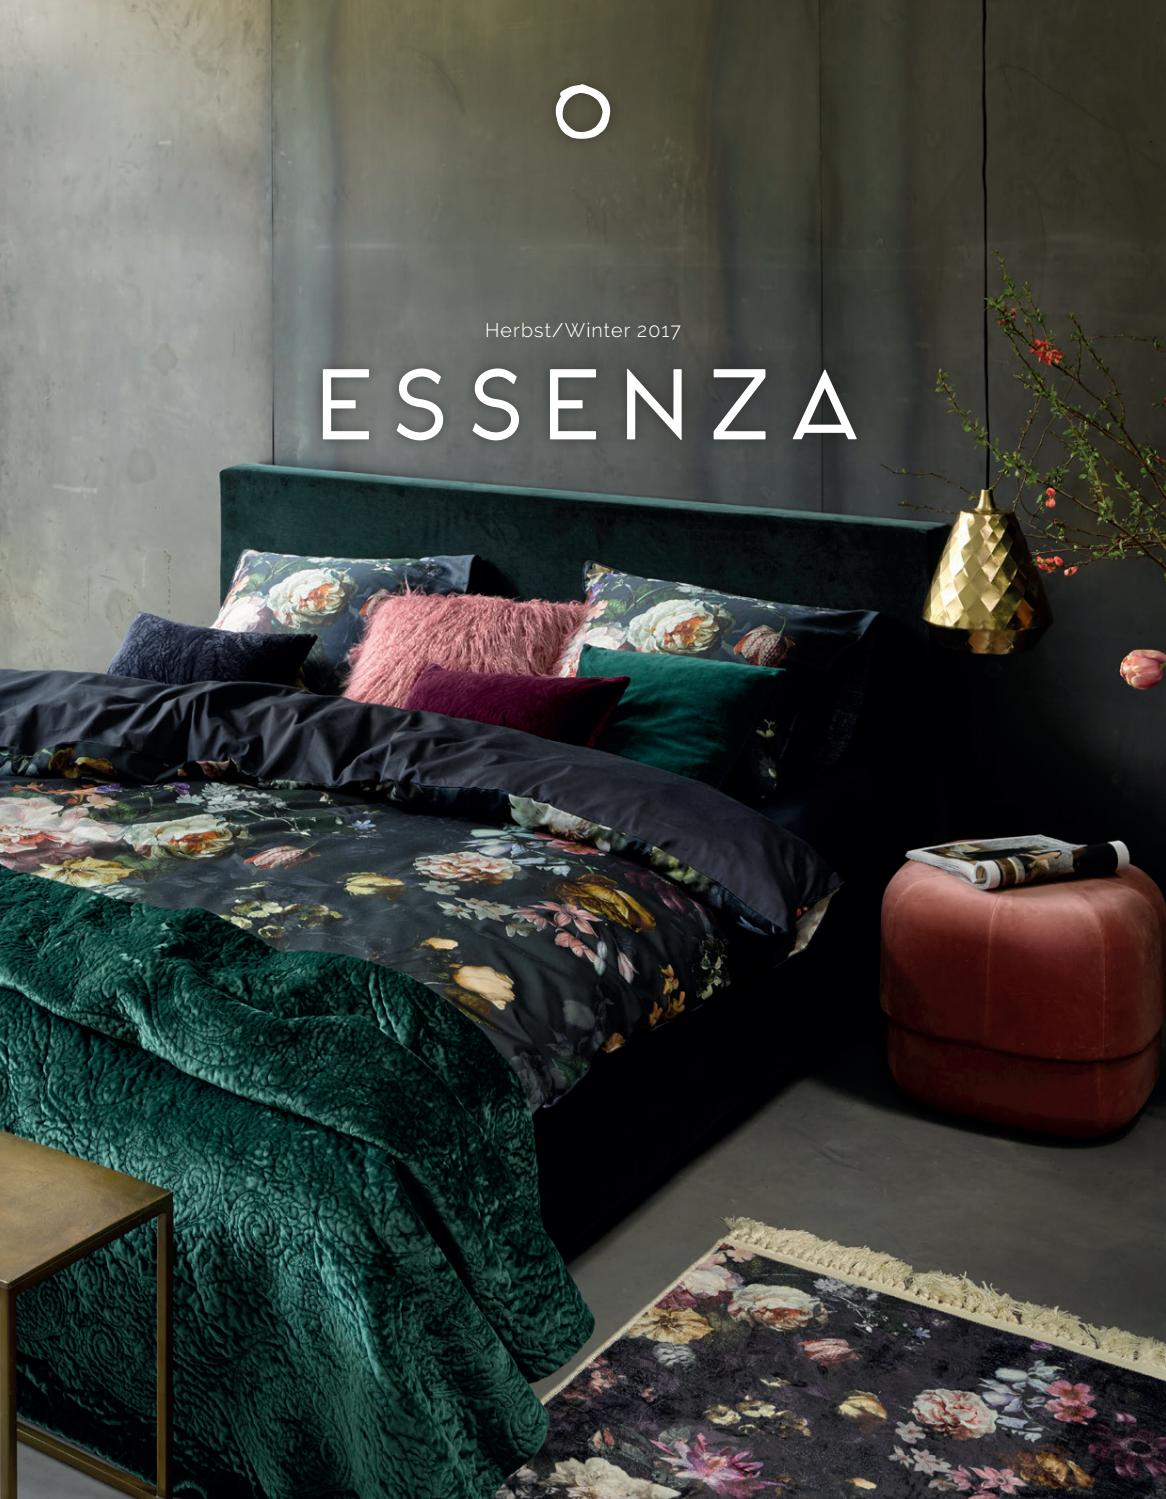 Essenza Fall Winter 2017 Bett Bad Kataloge By Essenza Home Issuu